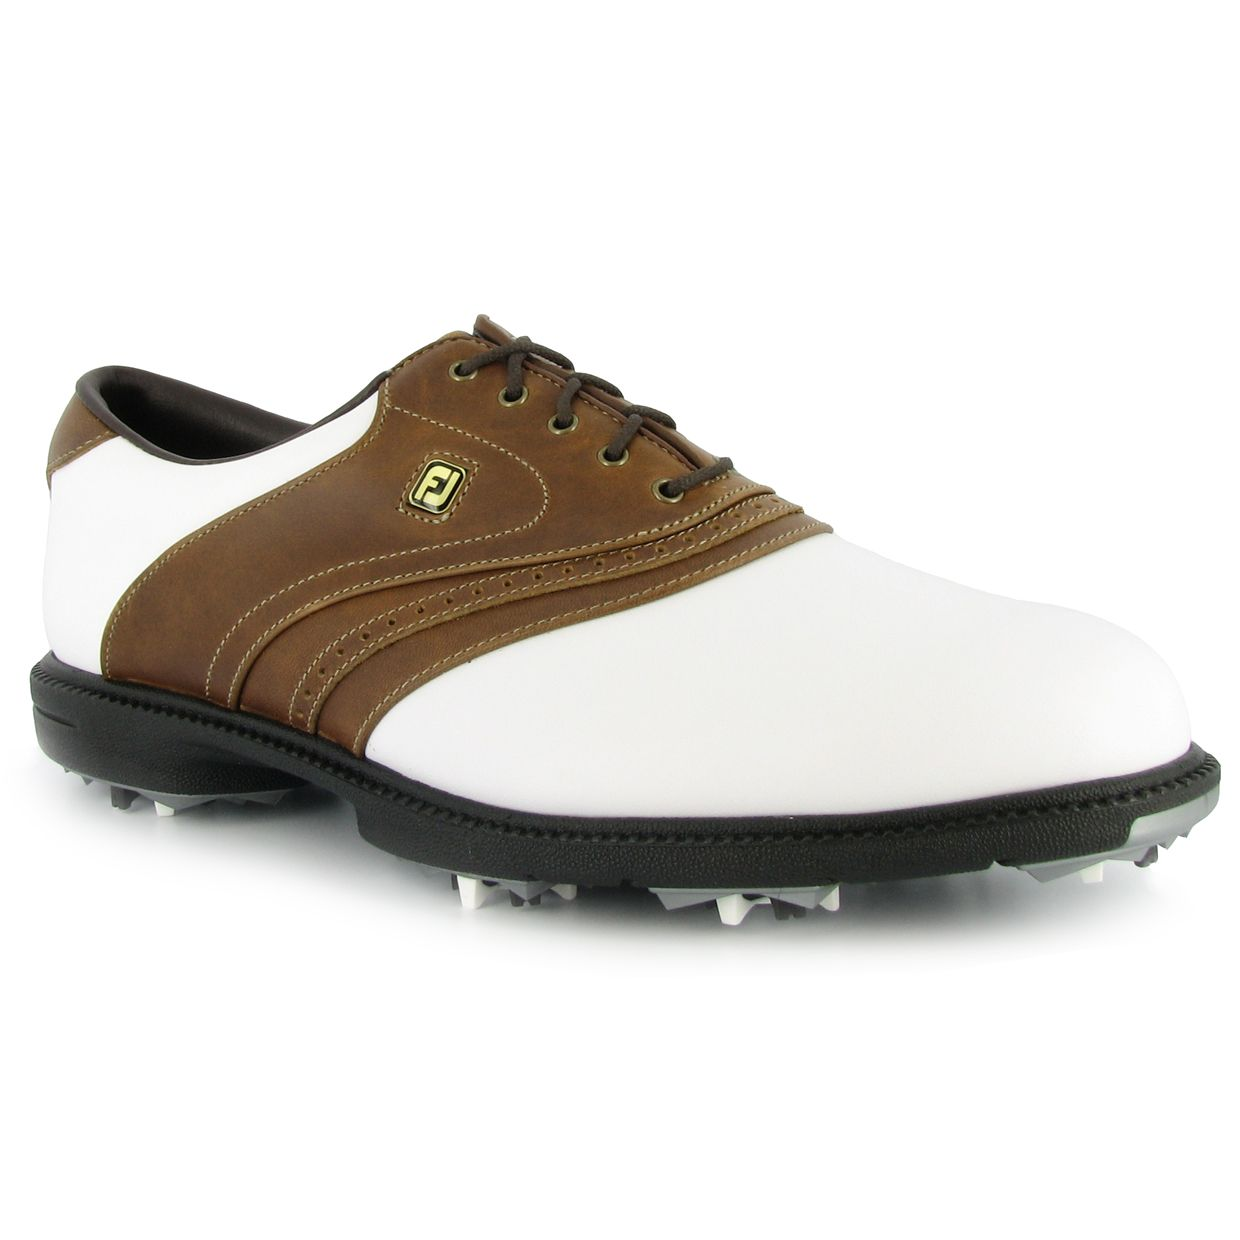 Fj Superlites Golf Shoes